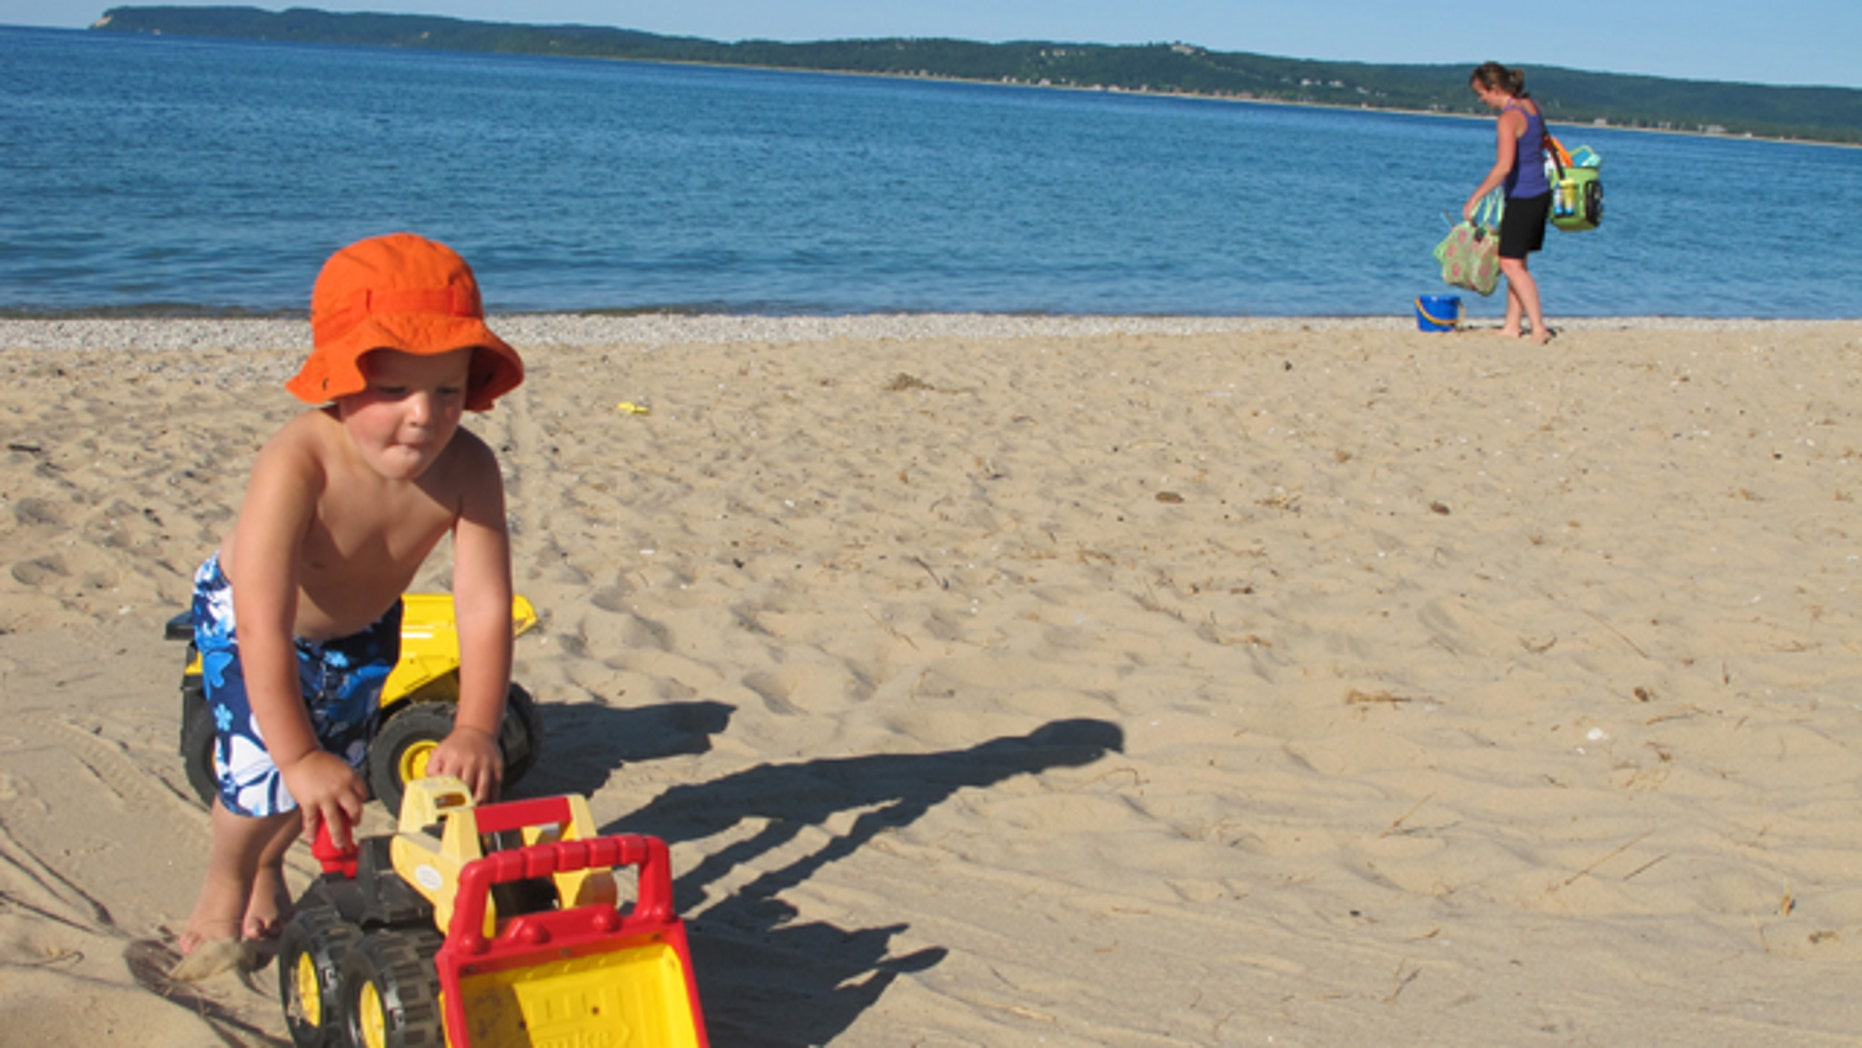 June 2011: Glen Haven beach at the Sleeping Bear Dunes National Lakeshore.